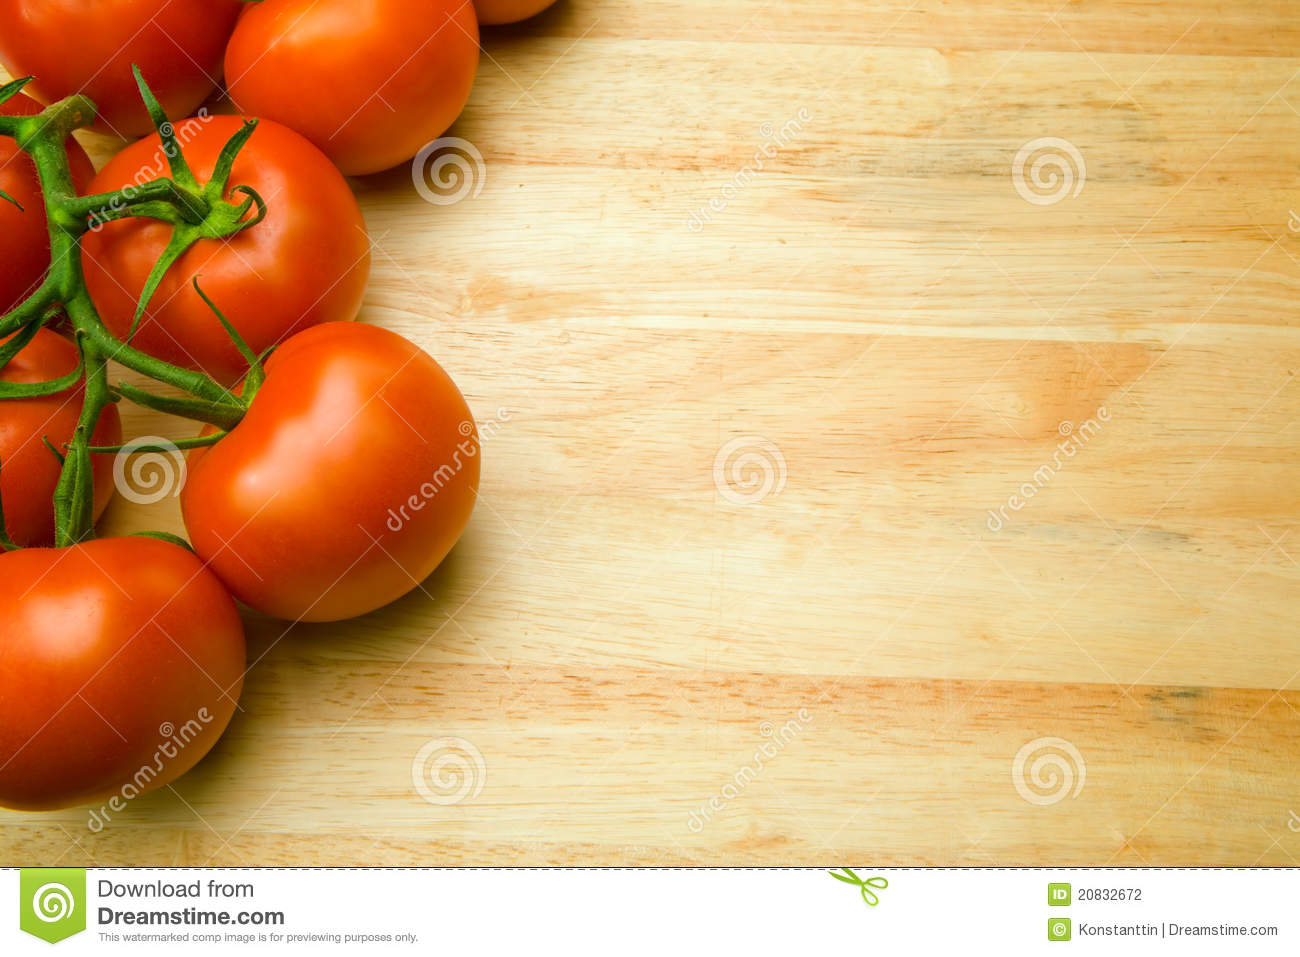 Good Background For Presentation About Food